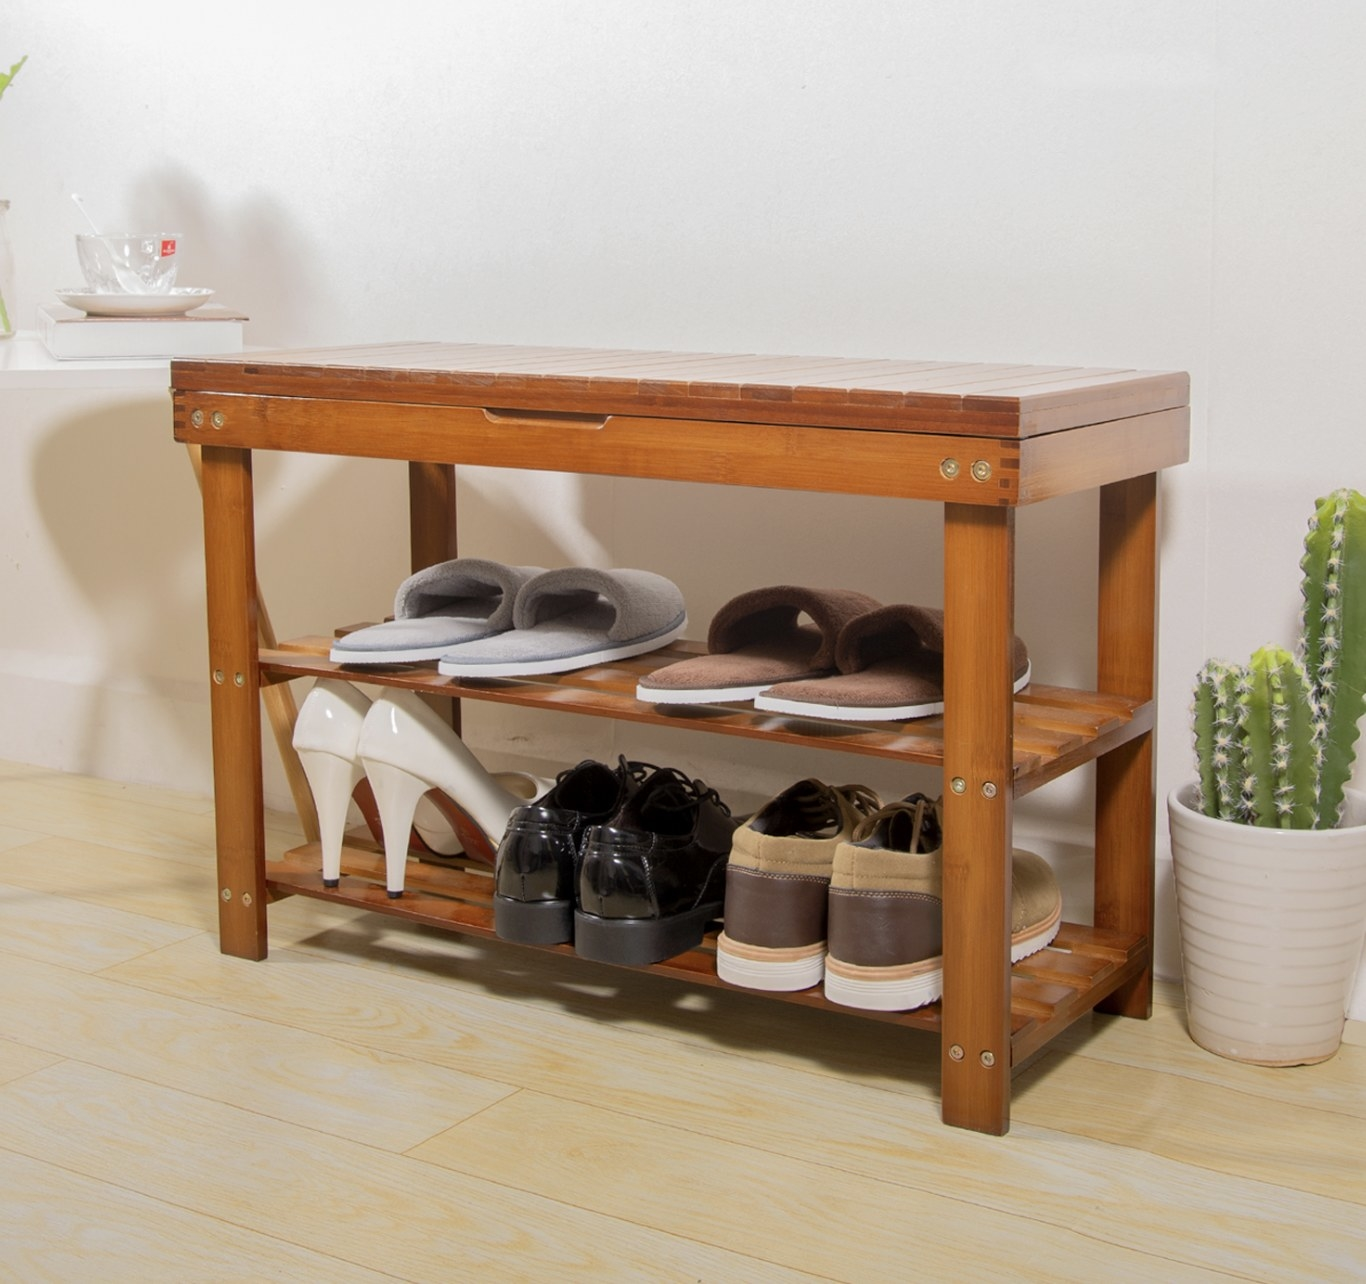 A cherry wood shoe organizer and bench